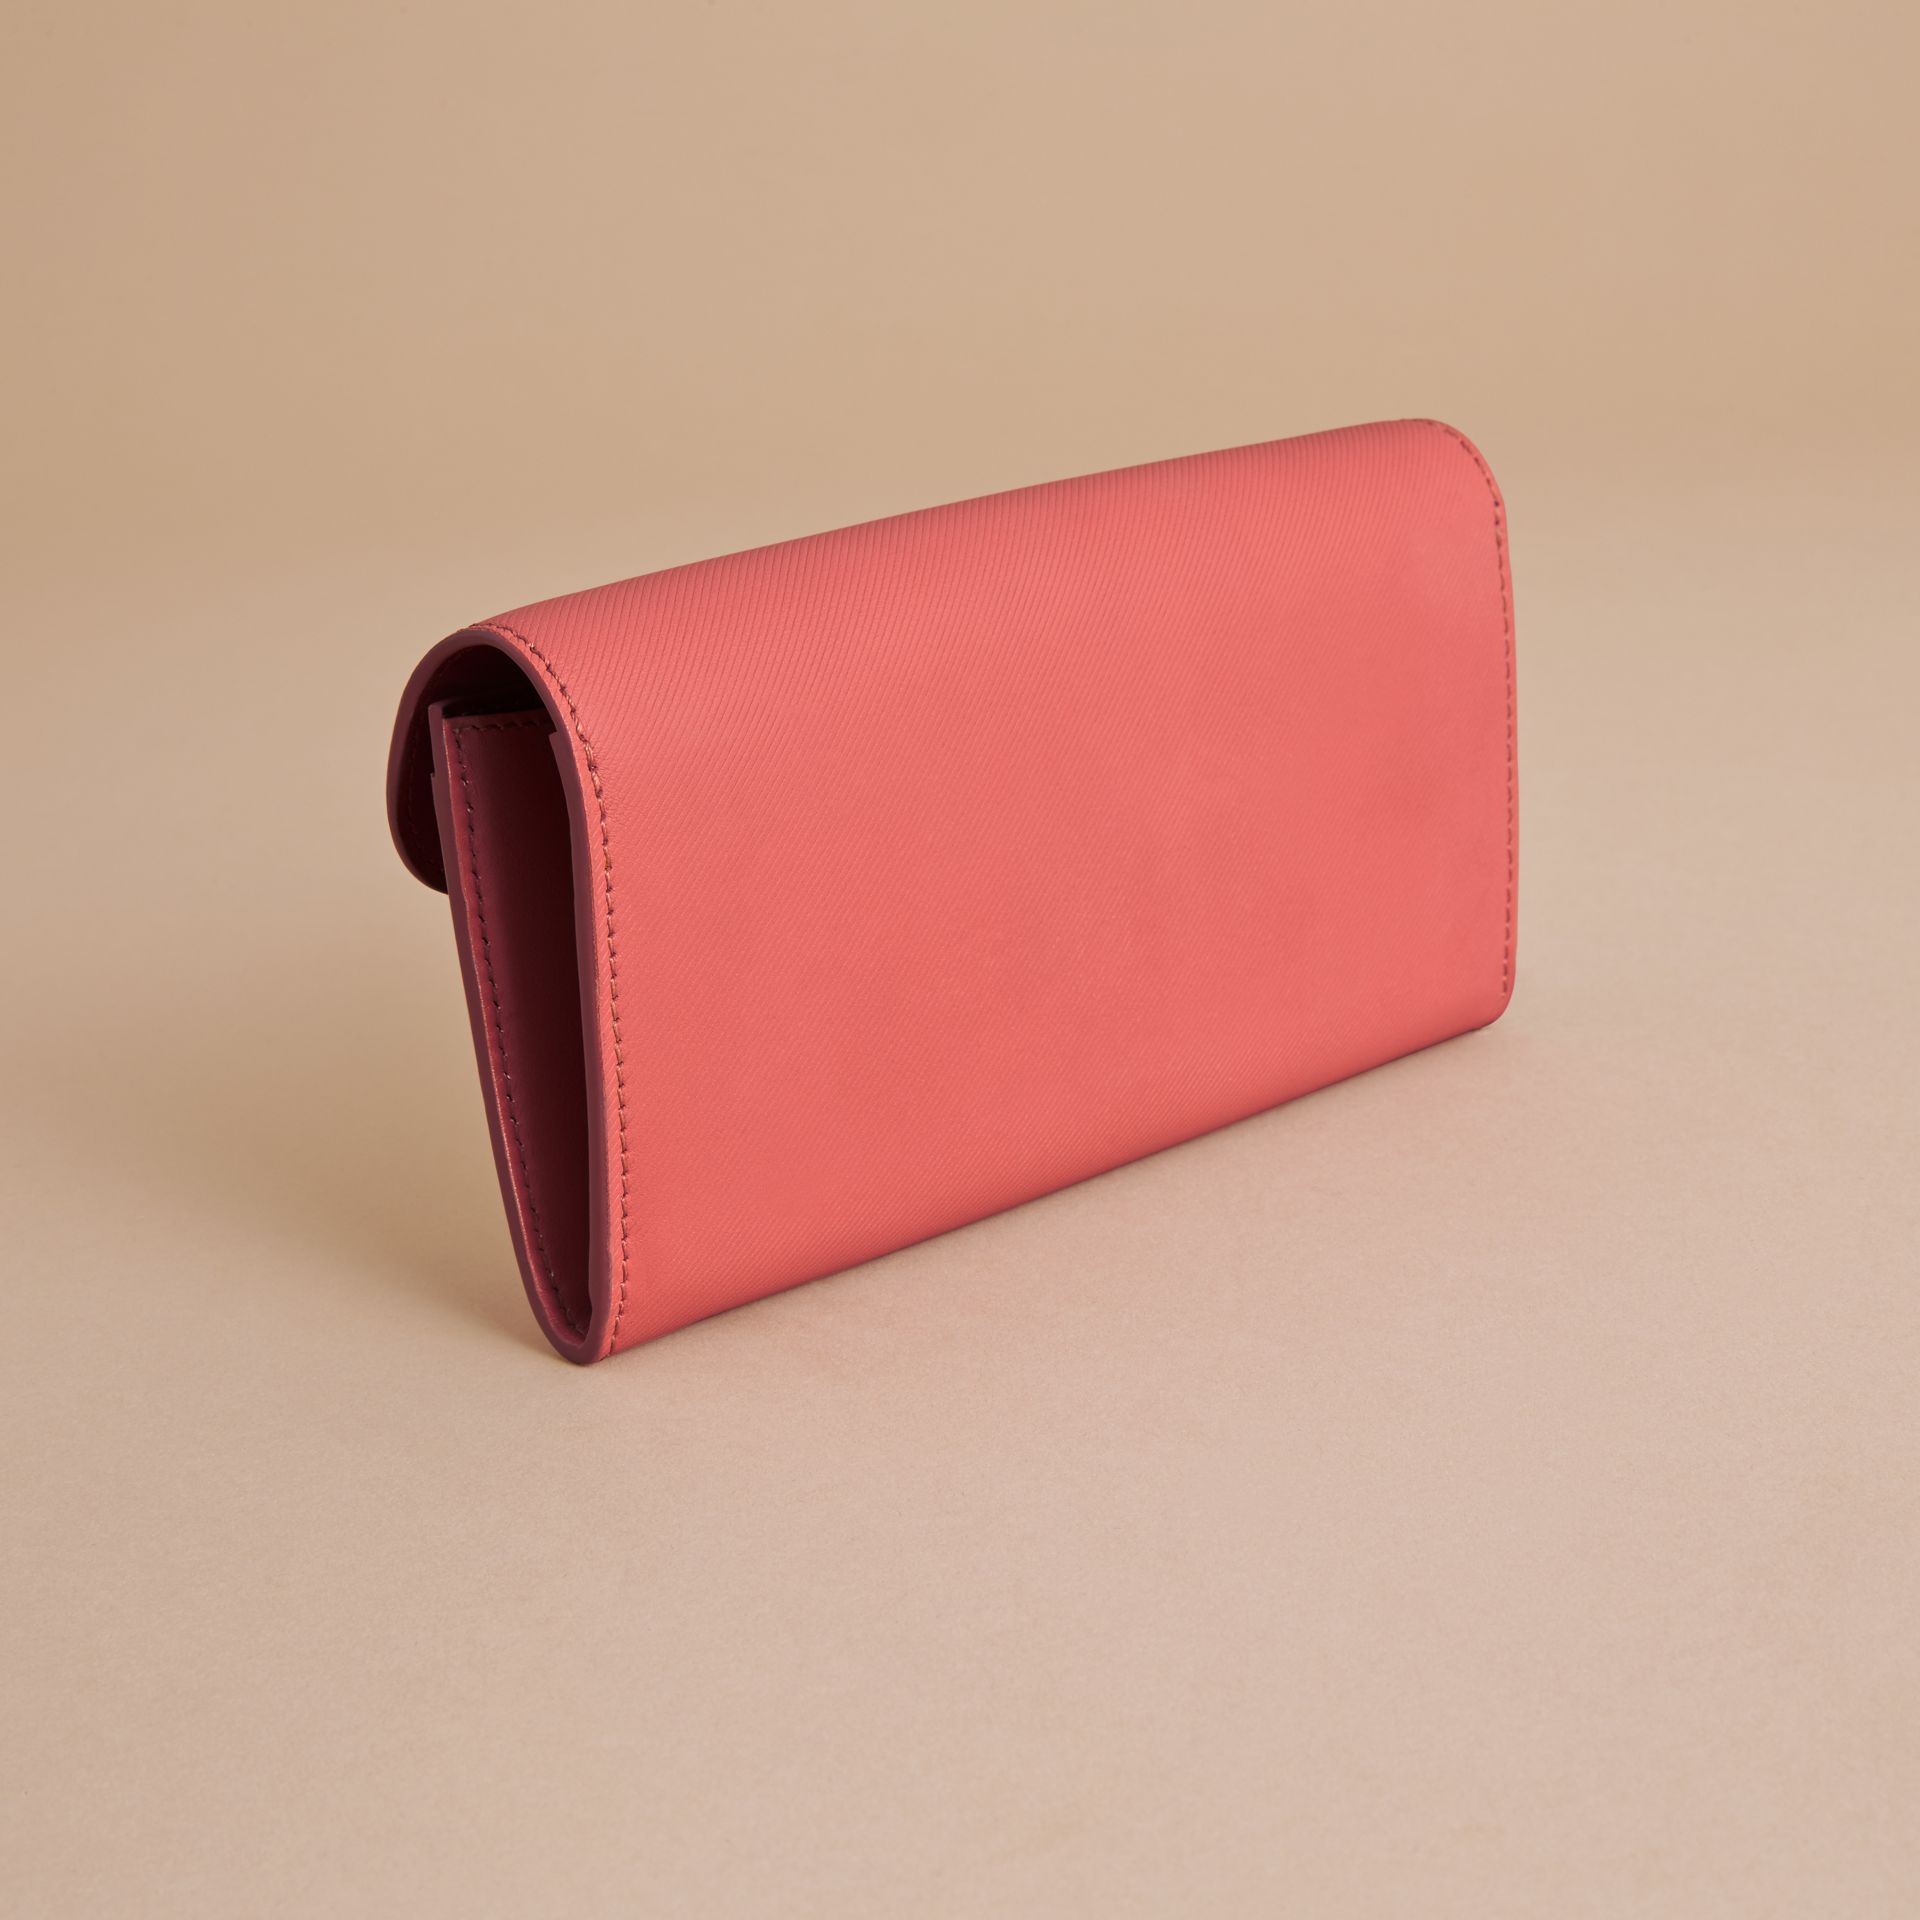 Two-tone Trench Leather Continental Wallet in Blossom Pink/antique Red - Women | Burberry Singapore - gallery image 4